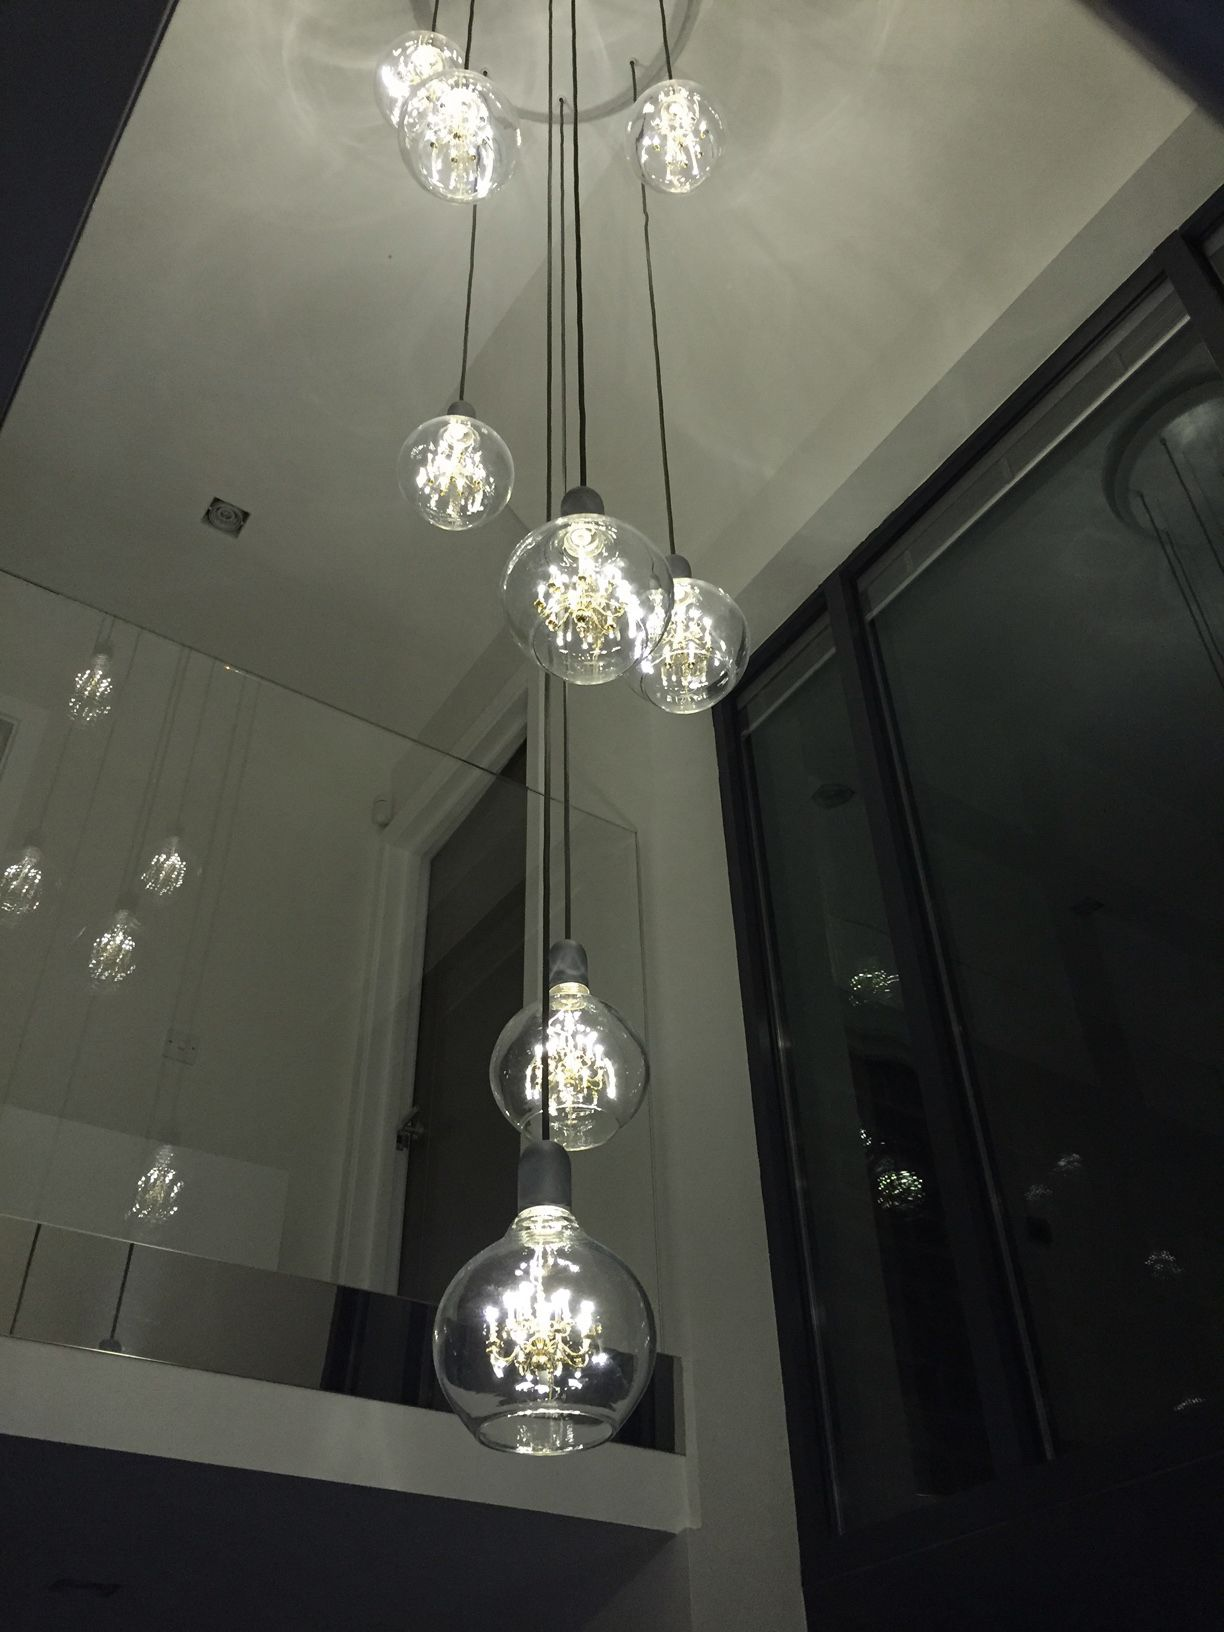 Find This Pin And More On LIGHTING V. Mini Chandelier Inside Glass Bulb  Makes For One Unusual Pendant ... Photo